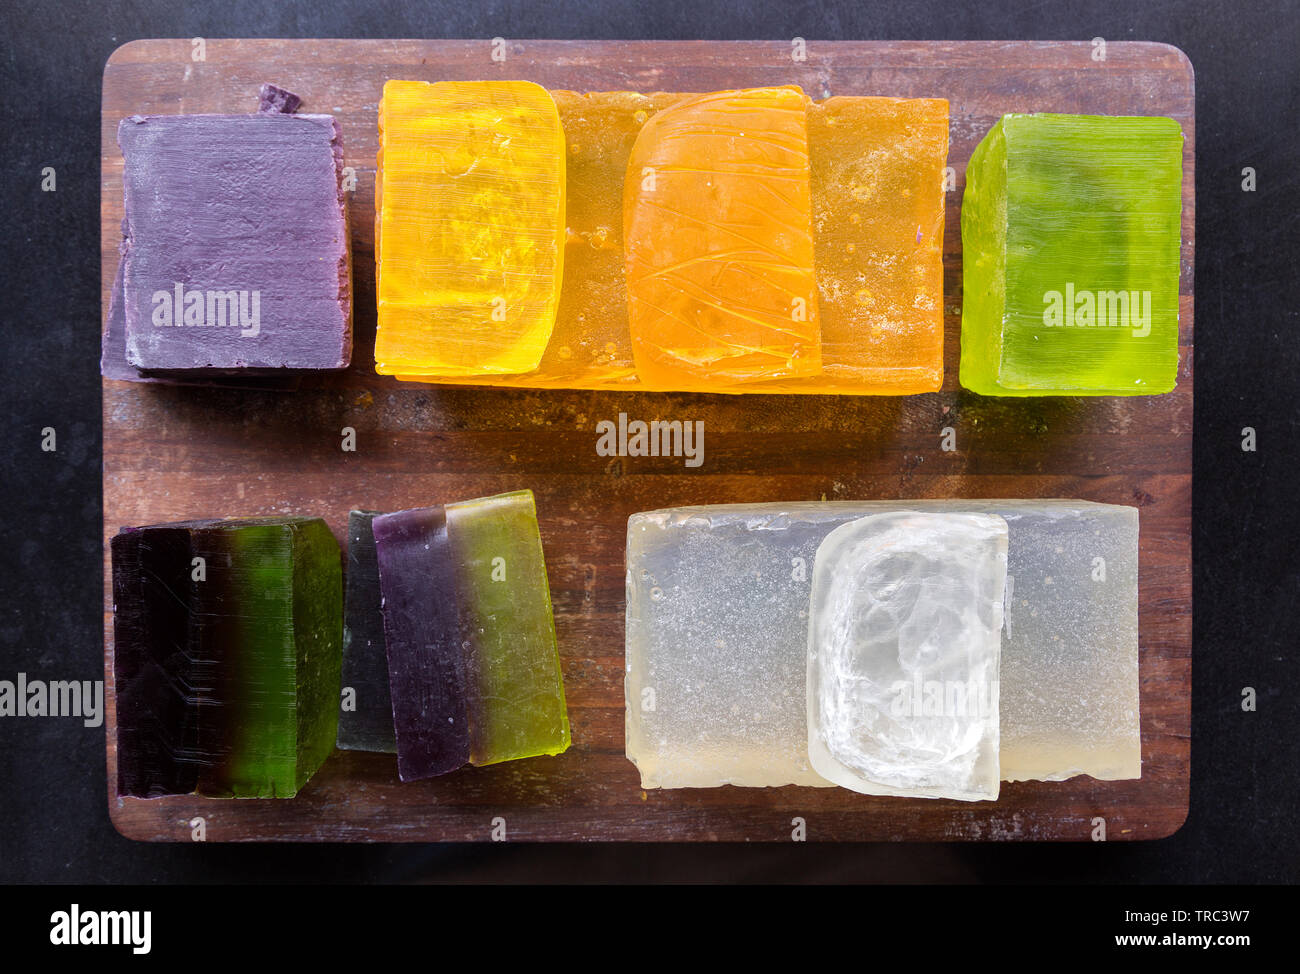 Colorful organic handmade soap bars close up - Stock Image